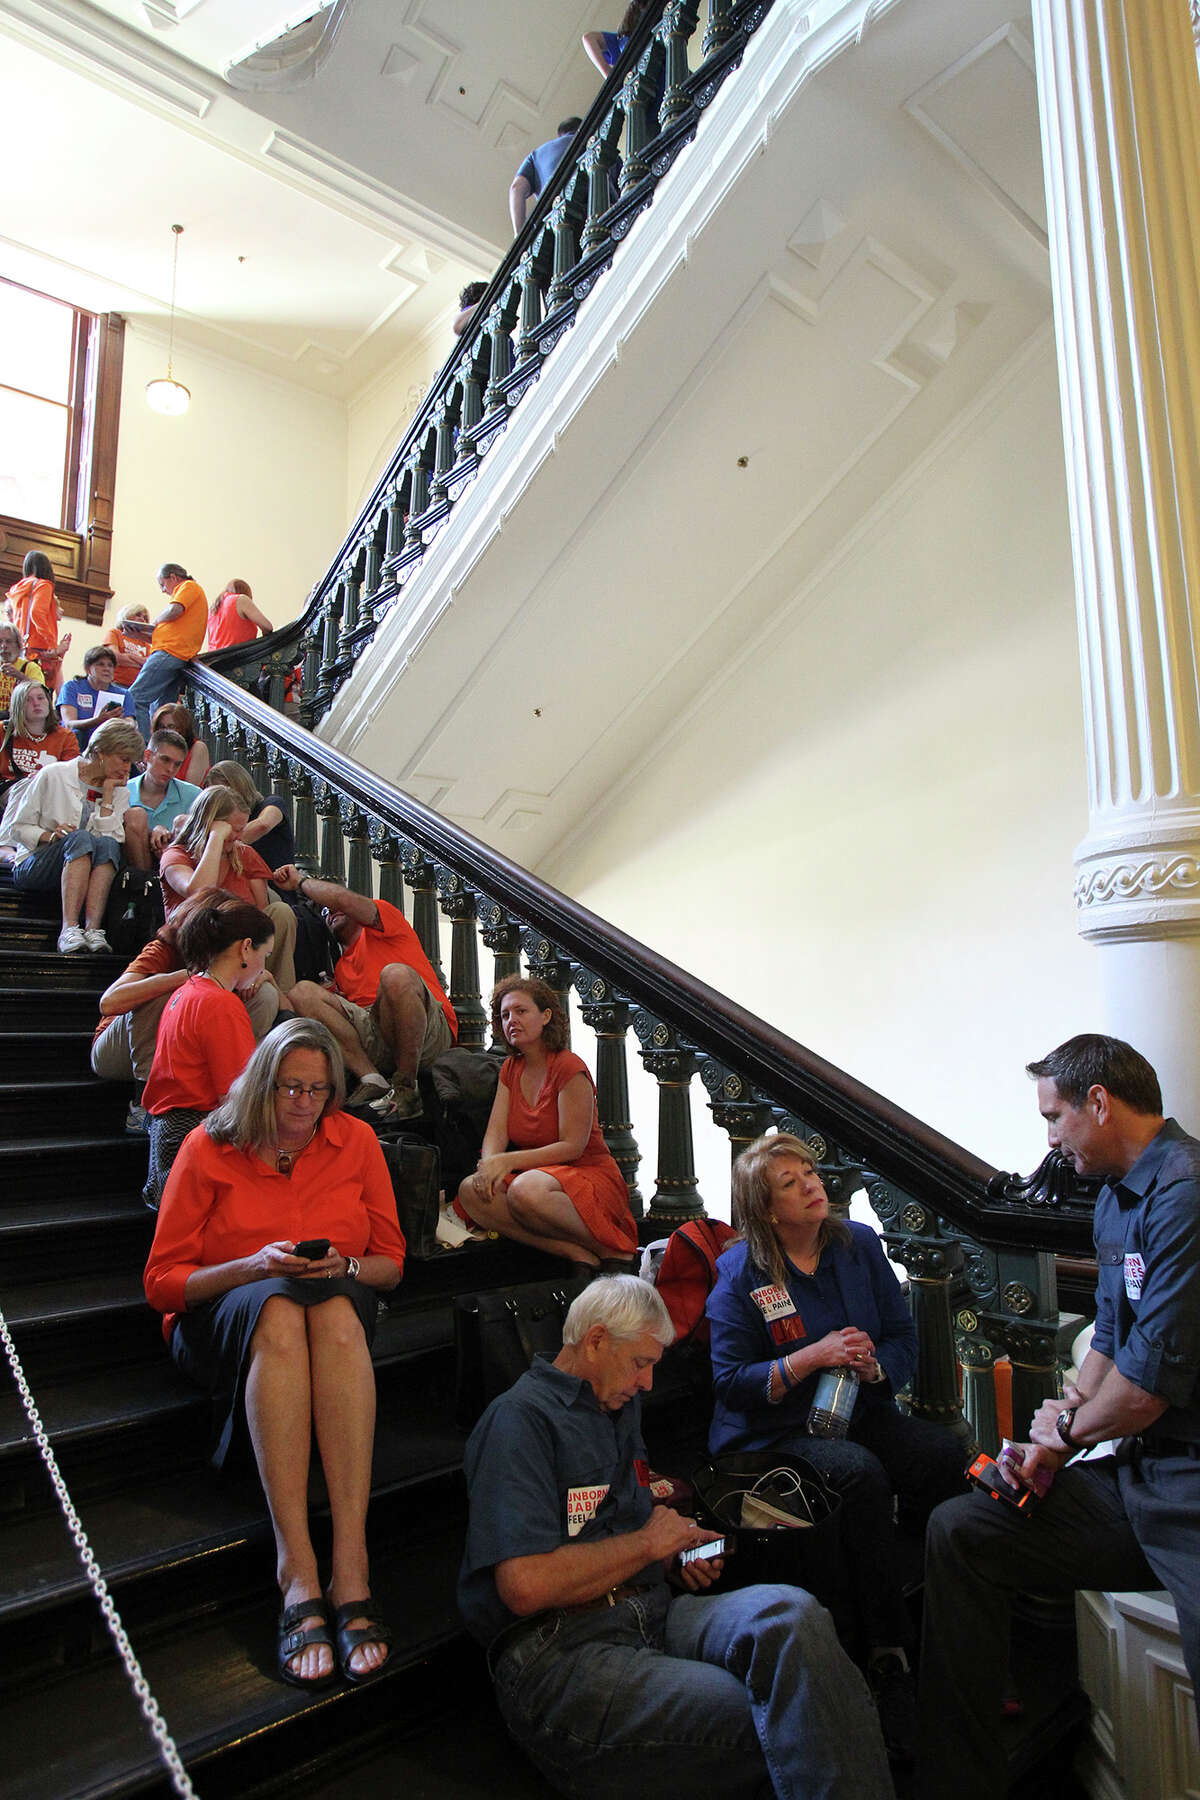 DPS troopers hang out in the hallways as supporters of both sides of the issue fill the Capitol building in Austin as a special committee hears testimony on Senate Bill 2 on July 1, 2013.